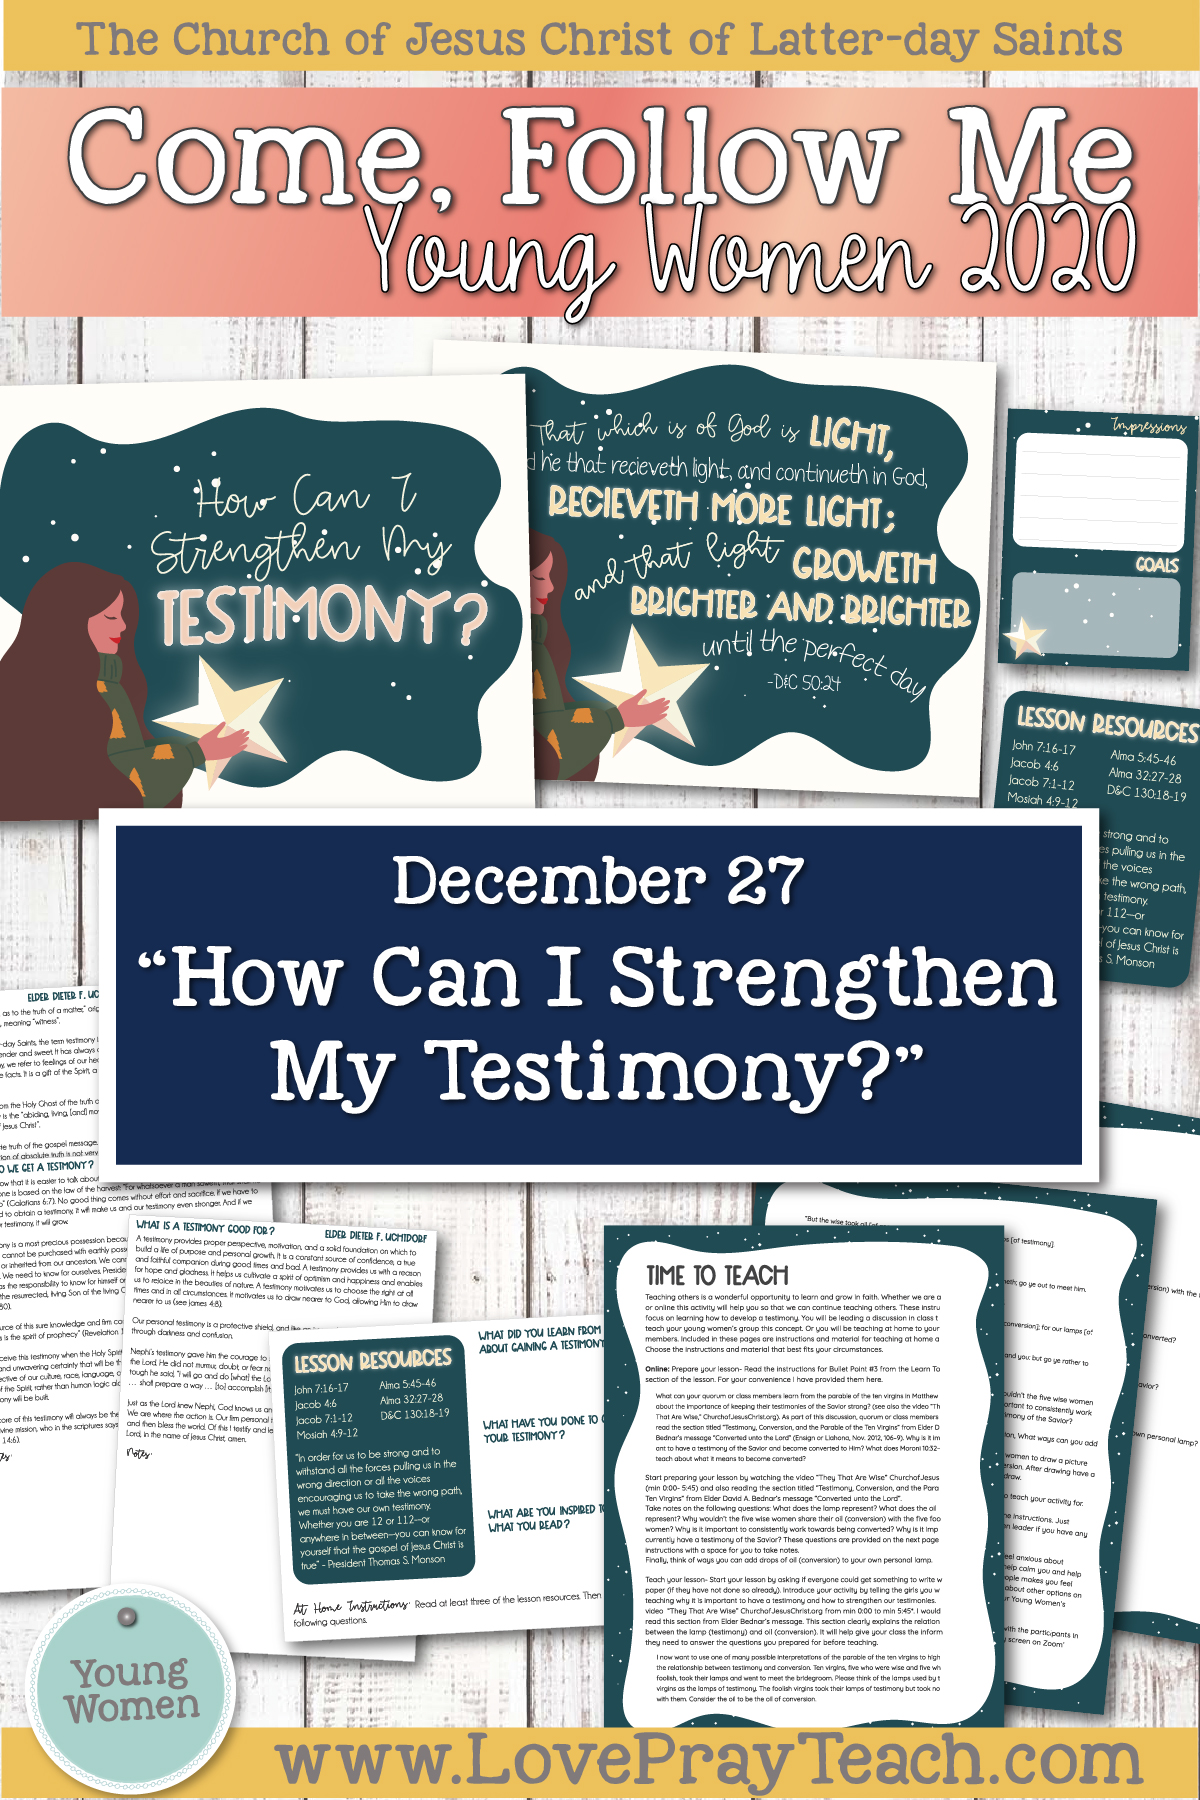 "Young Women Doctrinal Topic December 27: ""How Can I Strengthen My Testimony?"" Printable Lesson Materials www.LovePrayTeach.com"